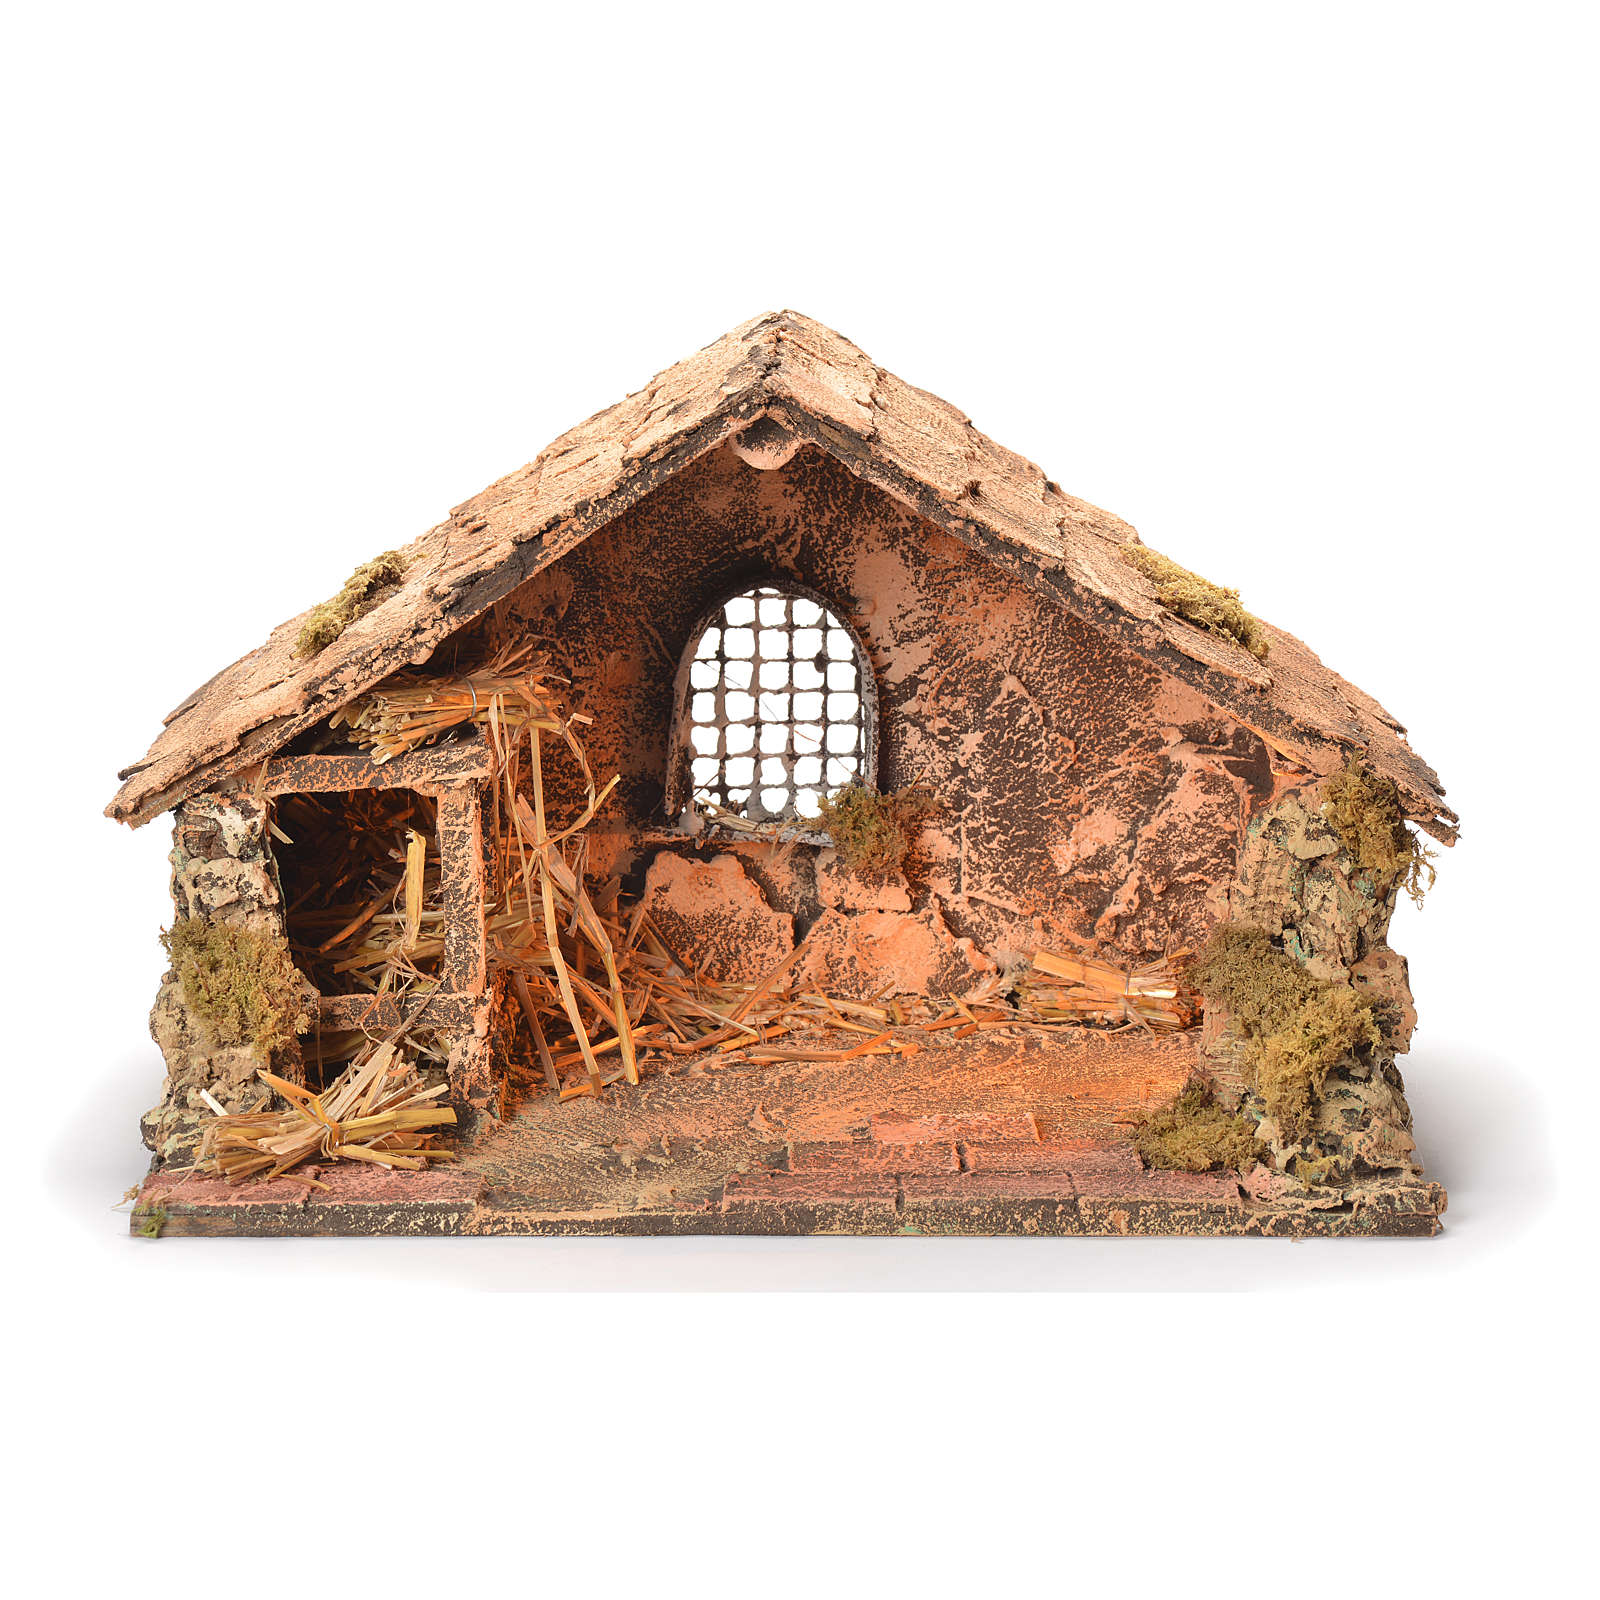 Wooden and straw cabin, Neapolitan Nativity 26x40x29cm 4